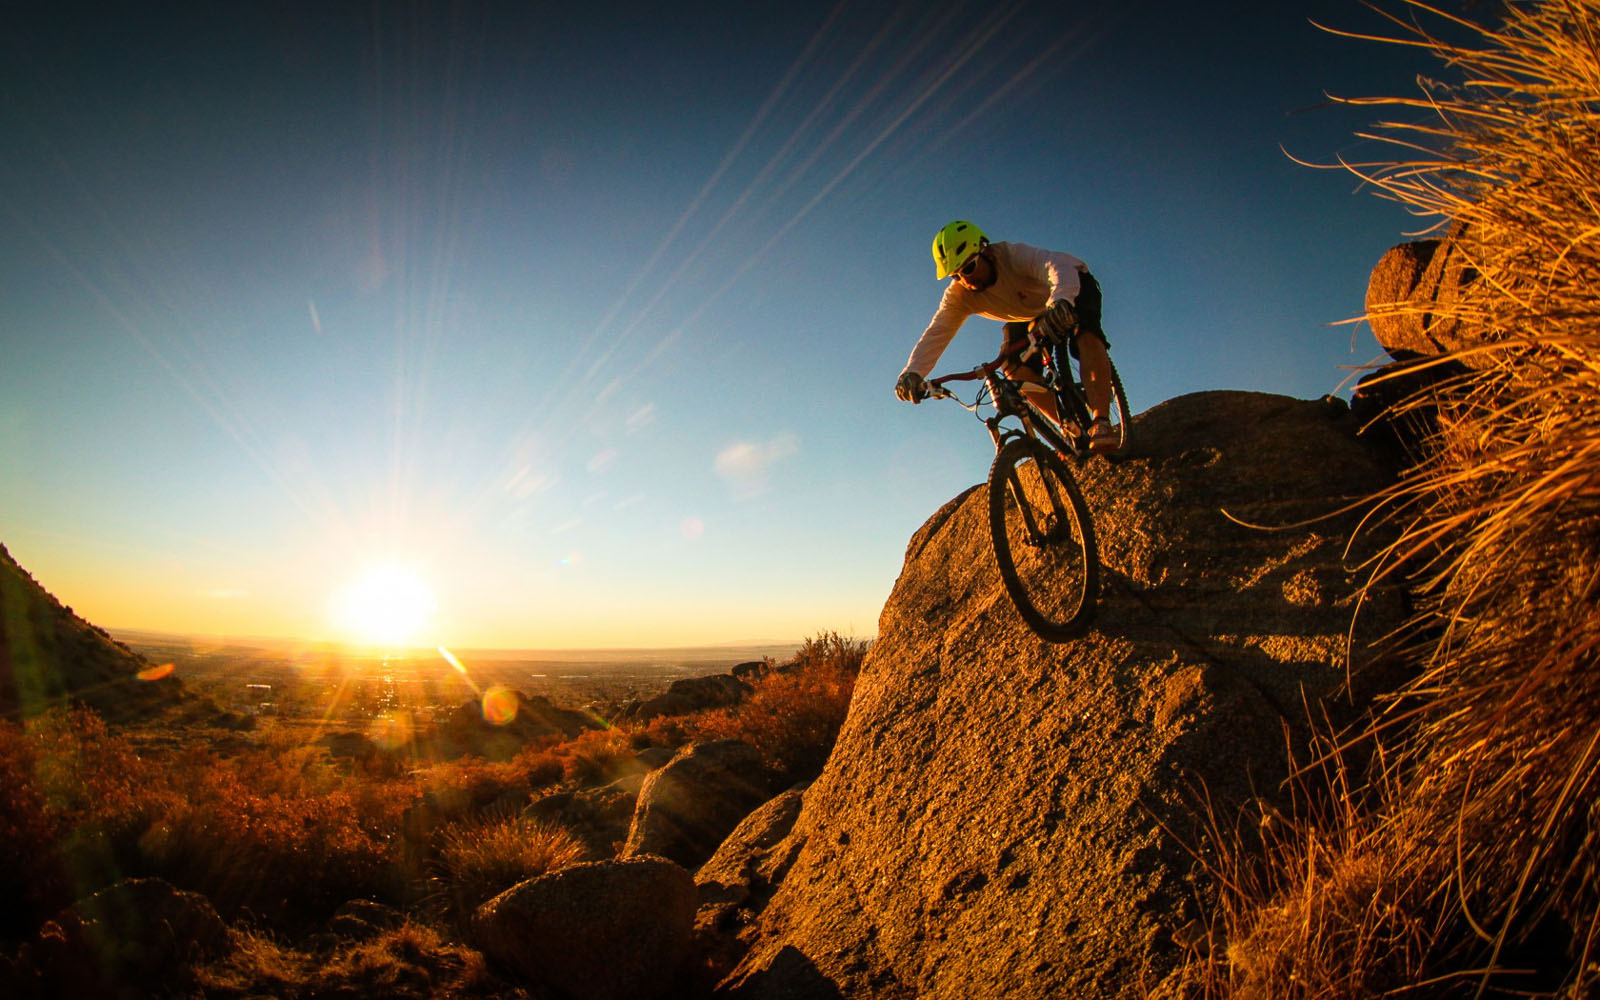 Crazy Cyclist With Mountain Bike On Hills 2013 Hd Desktop Wallpaper